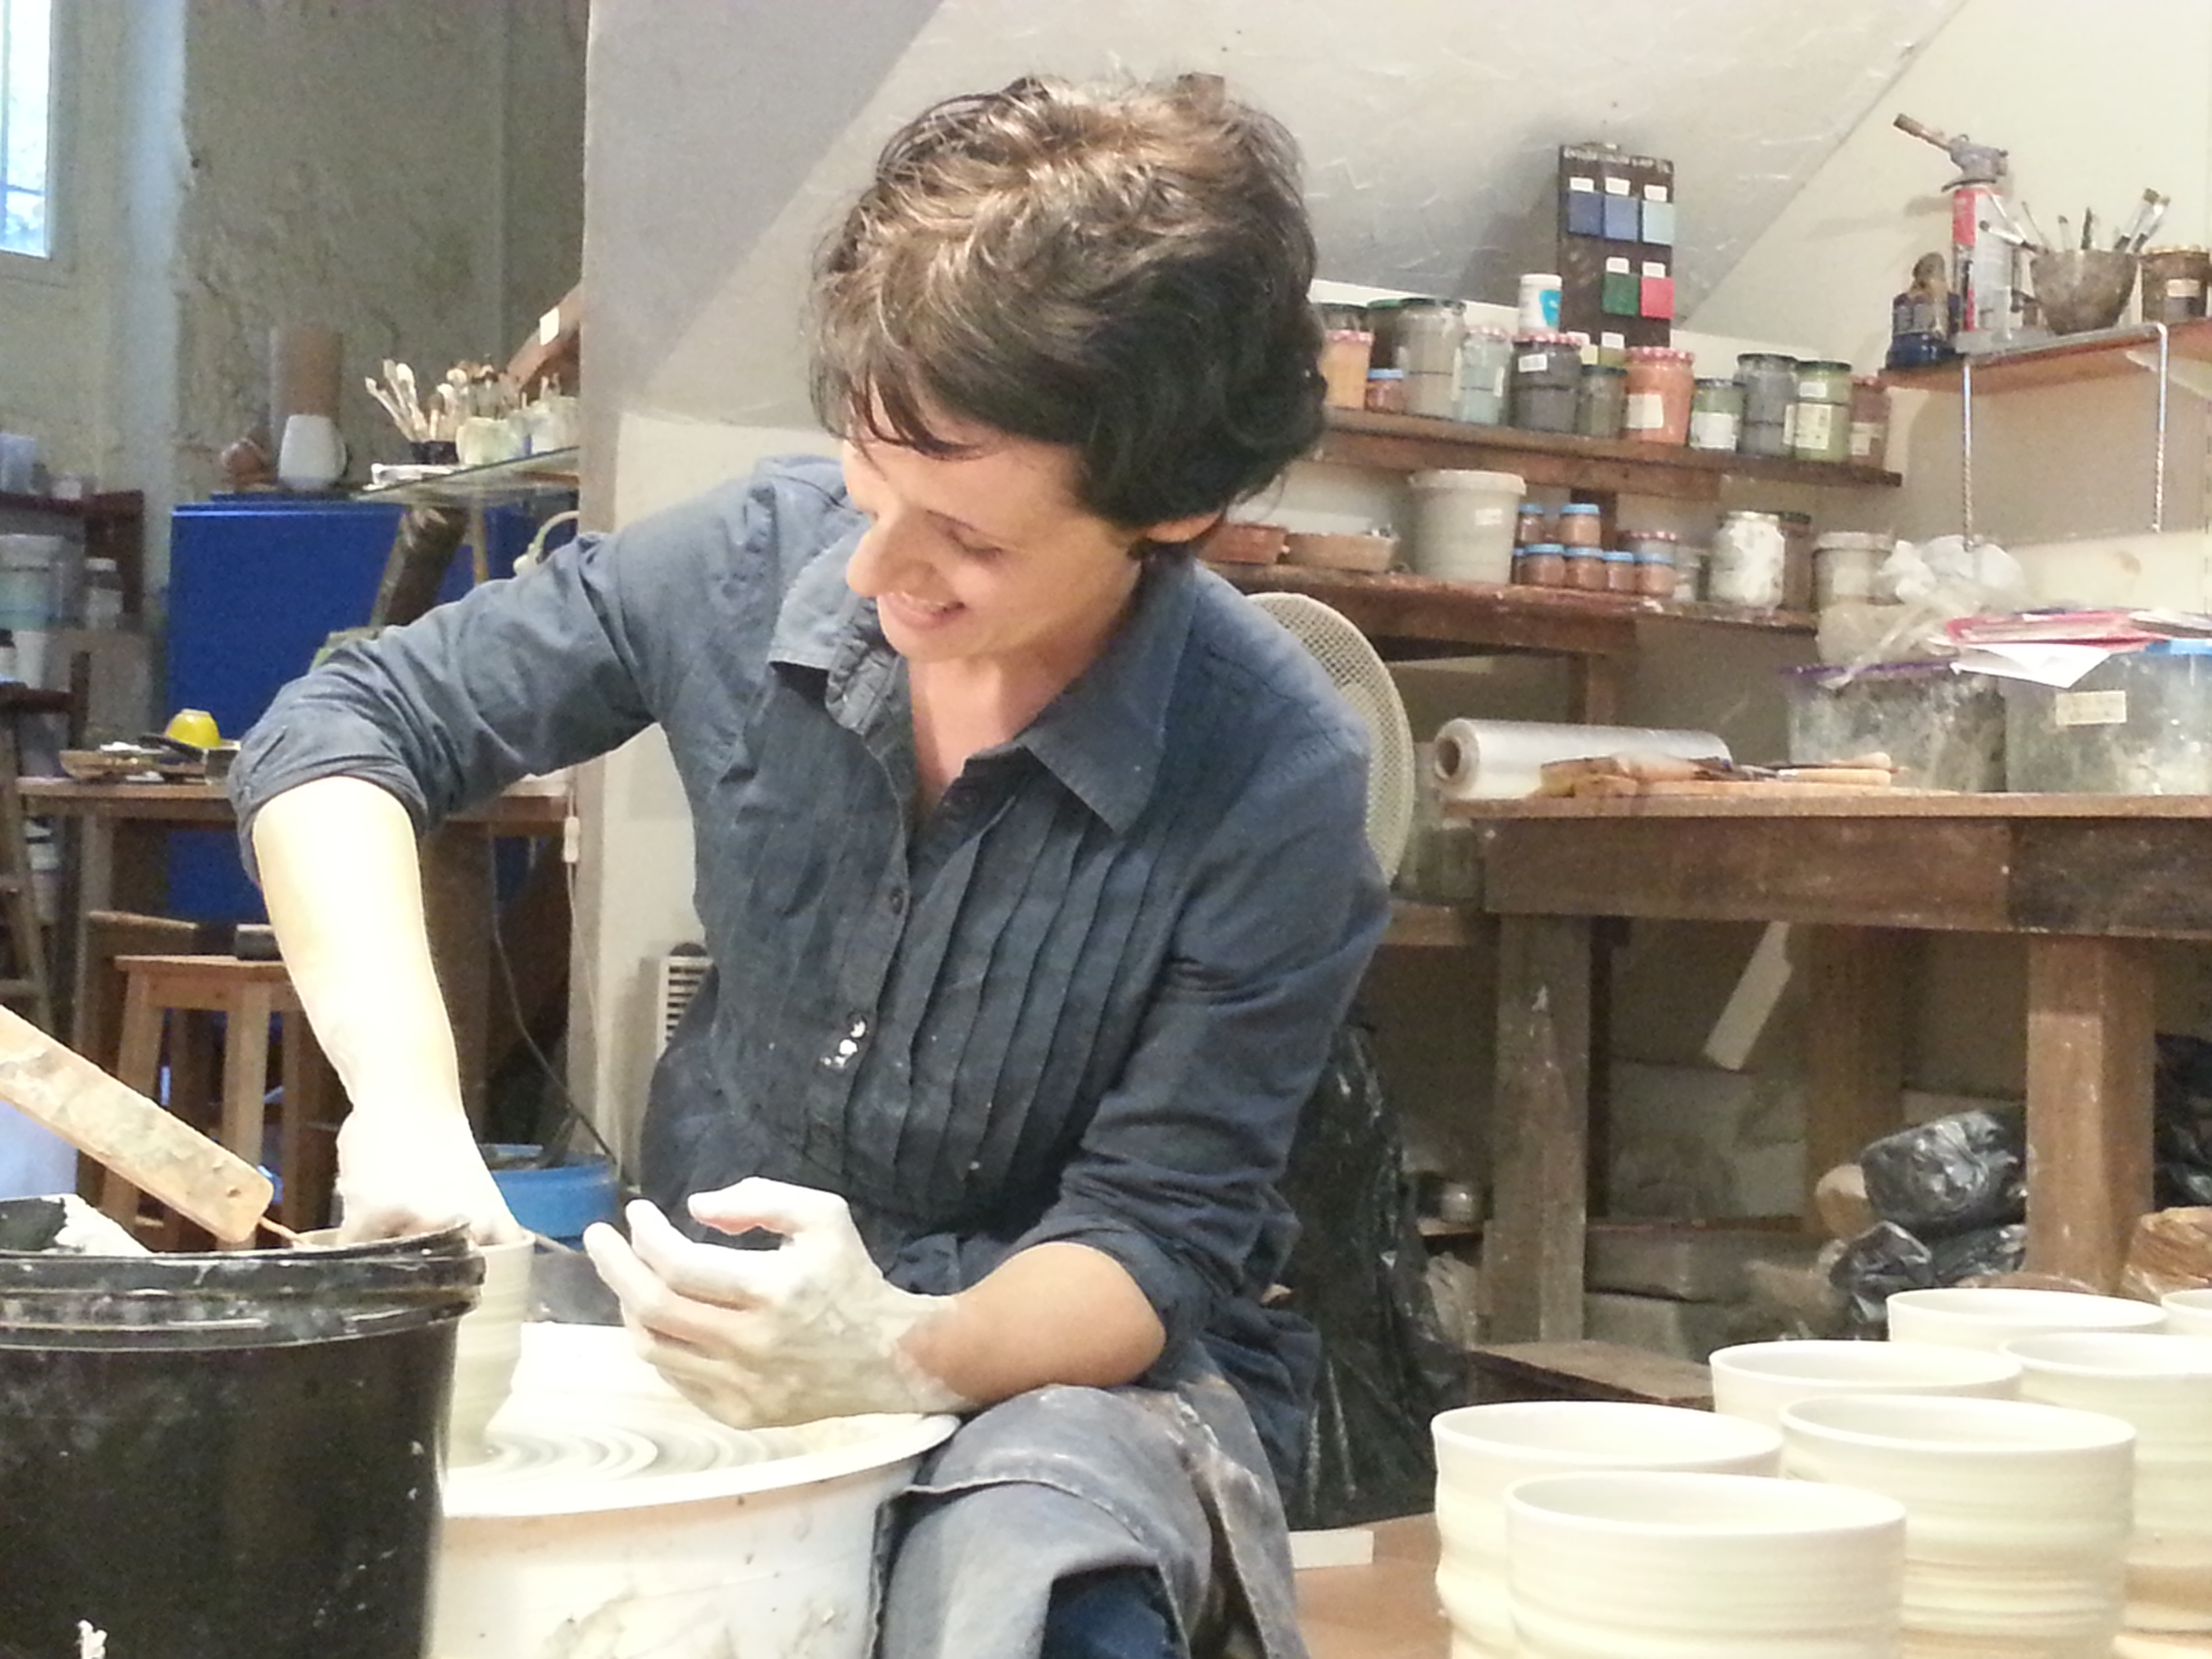 Cecile Cayrol making. Mugs in her pottery studio, La Main Qui Pense, Arles, France